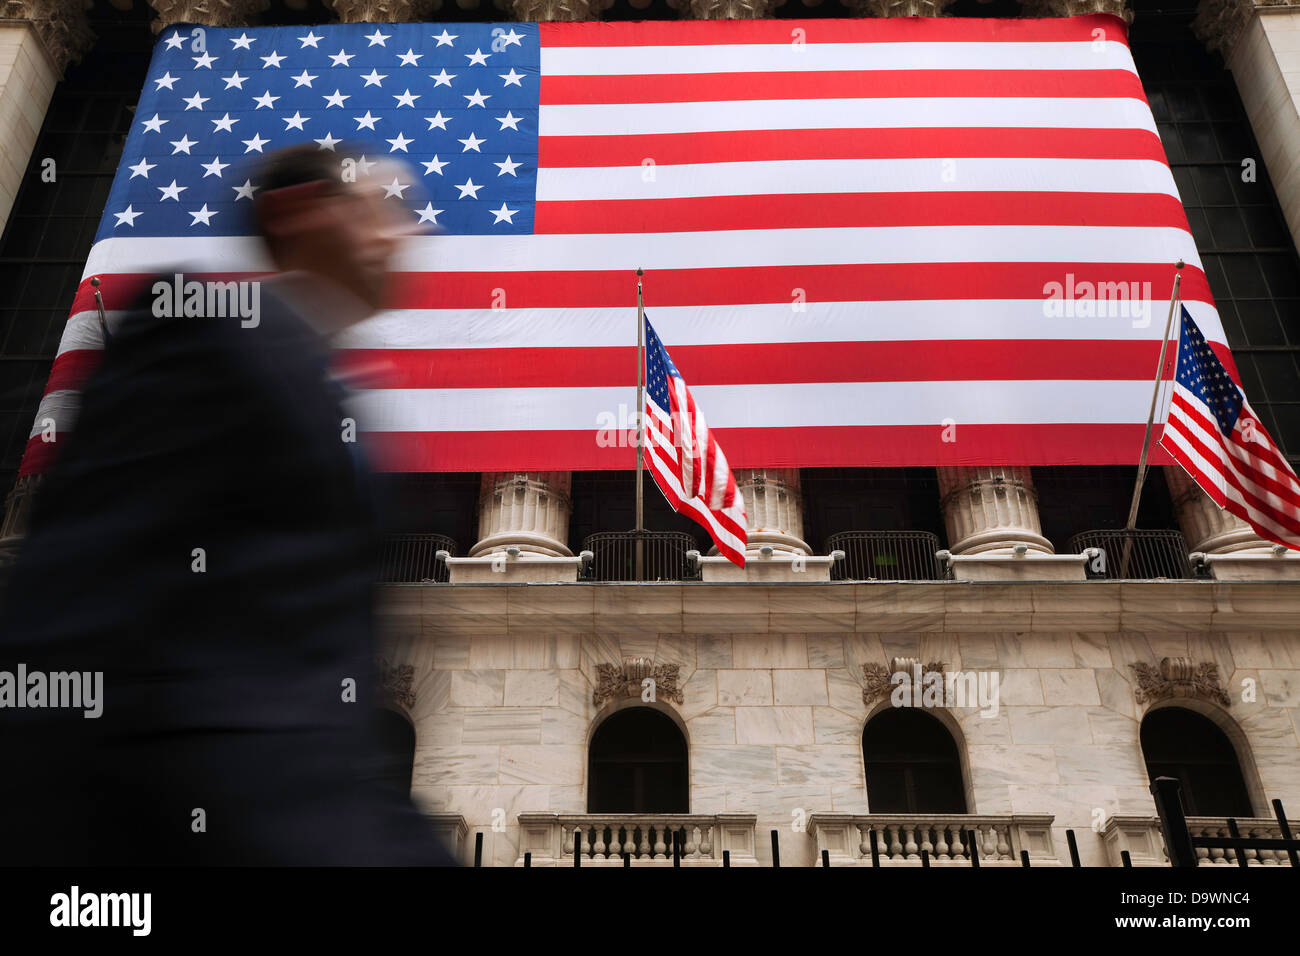 New York City, Manhattan, US flags outside the New York Stock Exchange, Wall Street - Stock Image